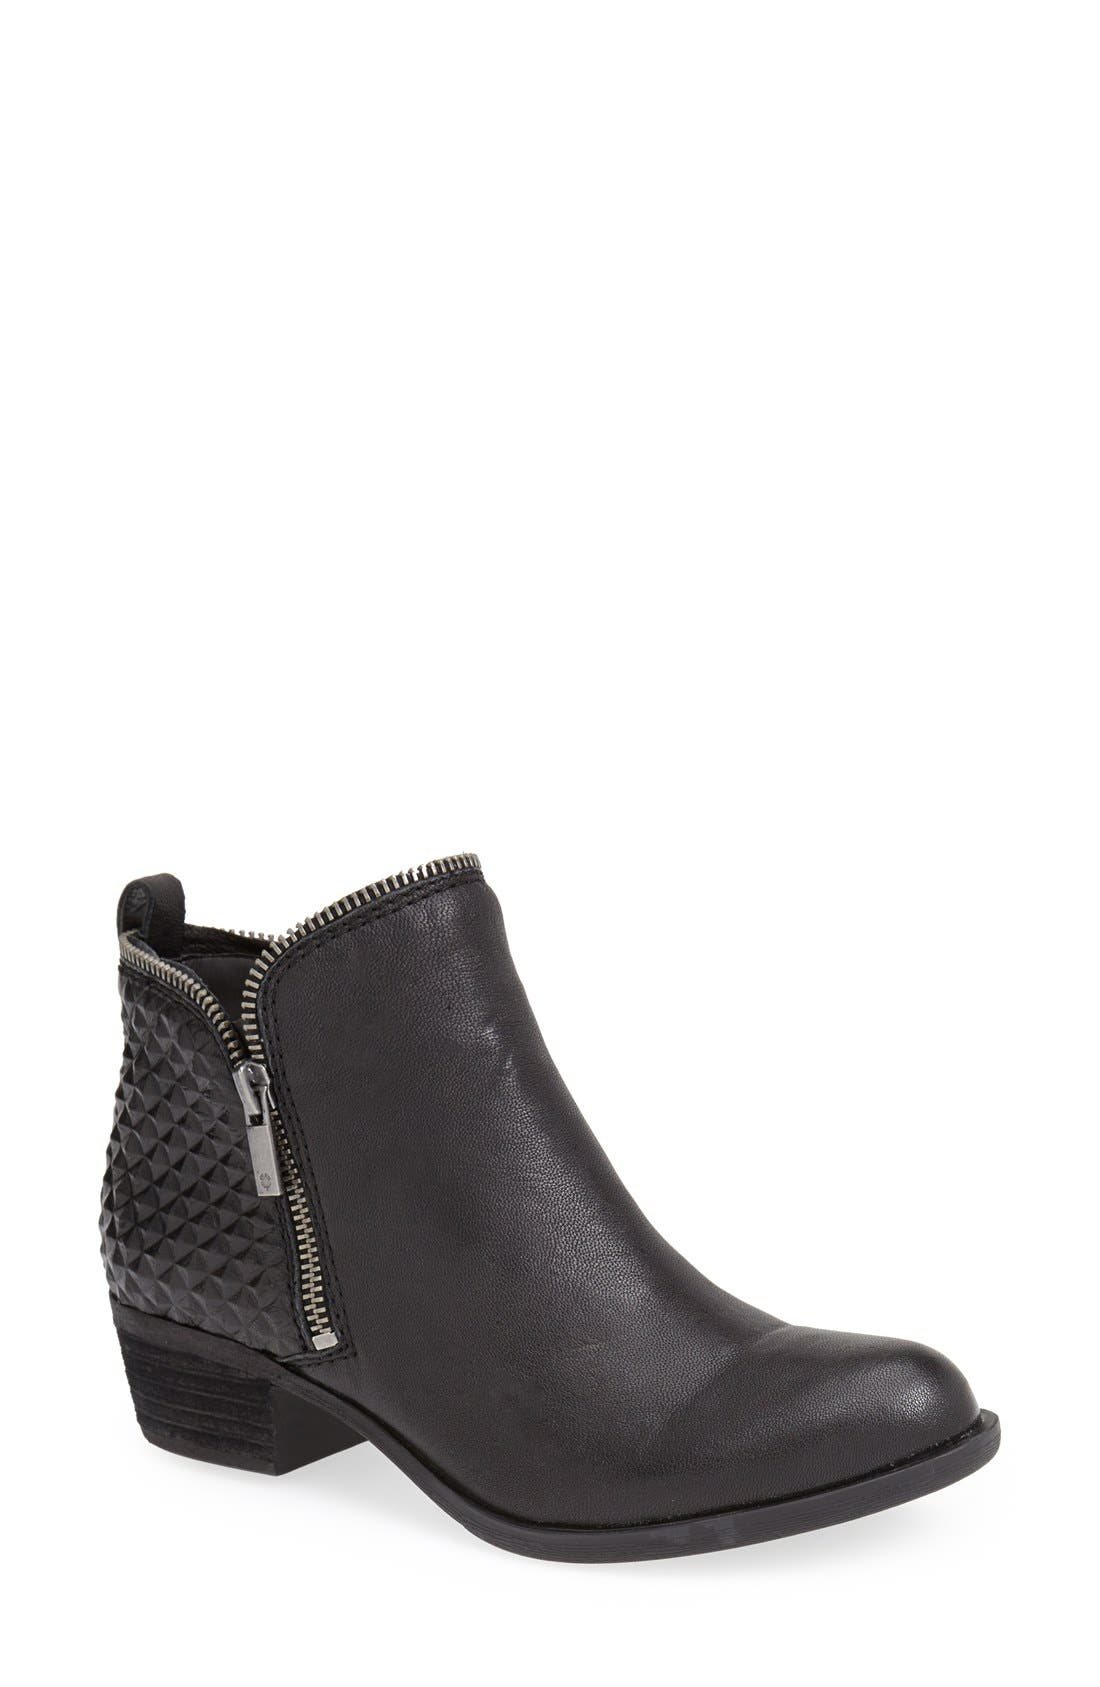 LUCKY BRAND,                             'Bartalino' Bootie,                             Main thumbnail 1, color,                             001